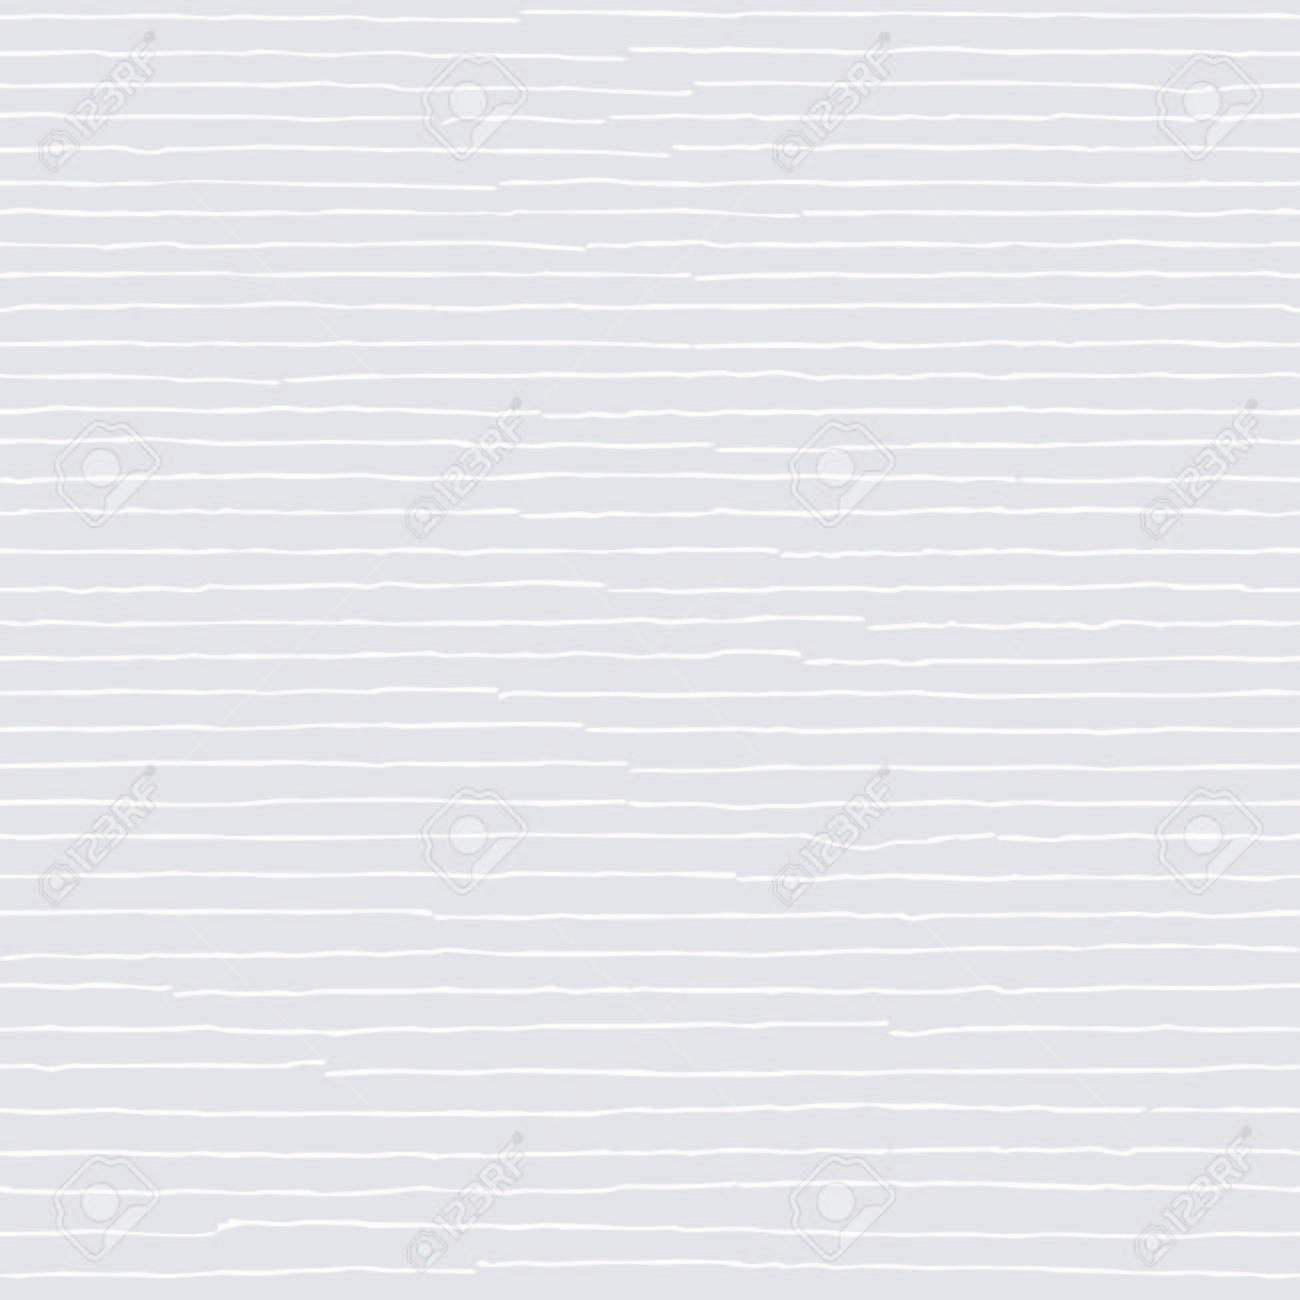 White seamless pattern. Hand drawn light beige abstract striped background with white grunge lines - 126901075